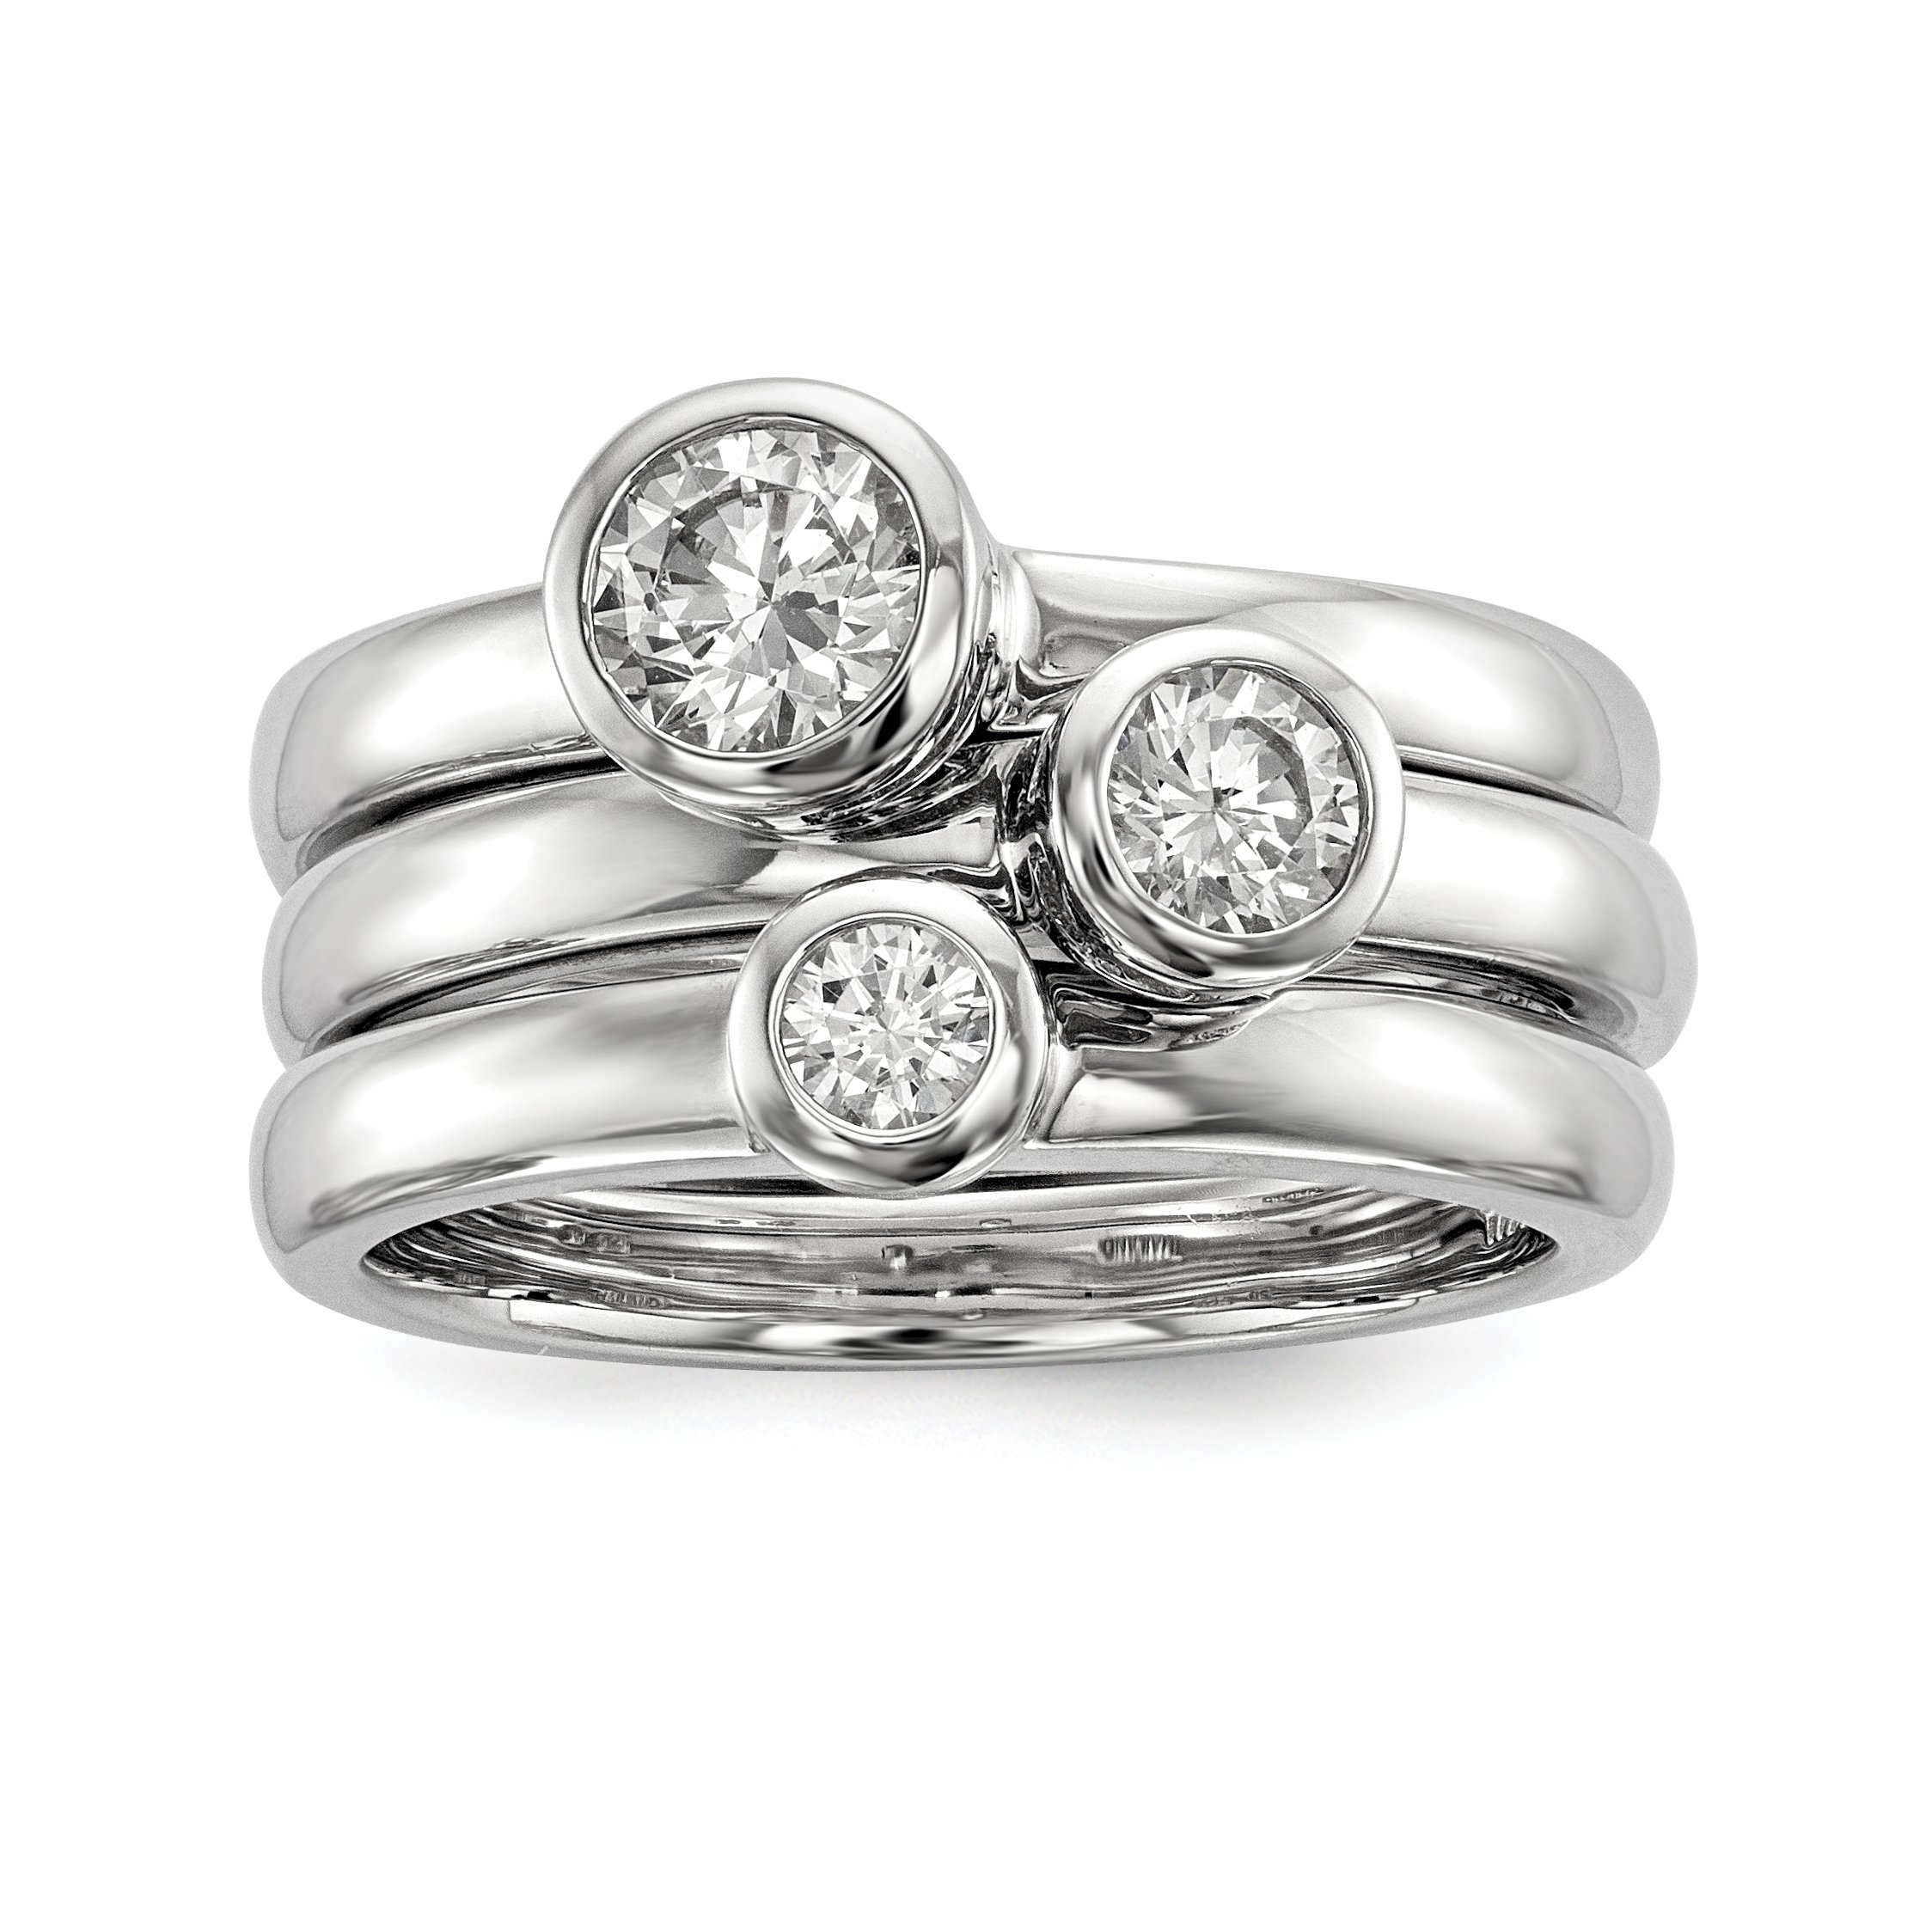 ICE CARATS 925 Sterling Silver Set Of Three Stackable Cubic Zirconia Cz Band Rings Size 8.00 Ring Fine Jewelry Gift Set For Women Heart